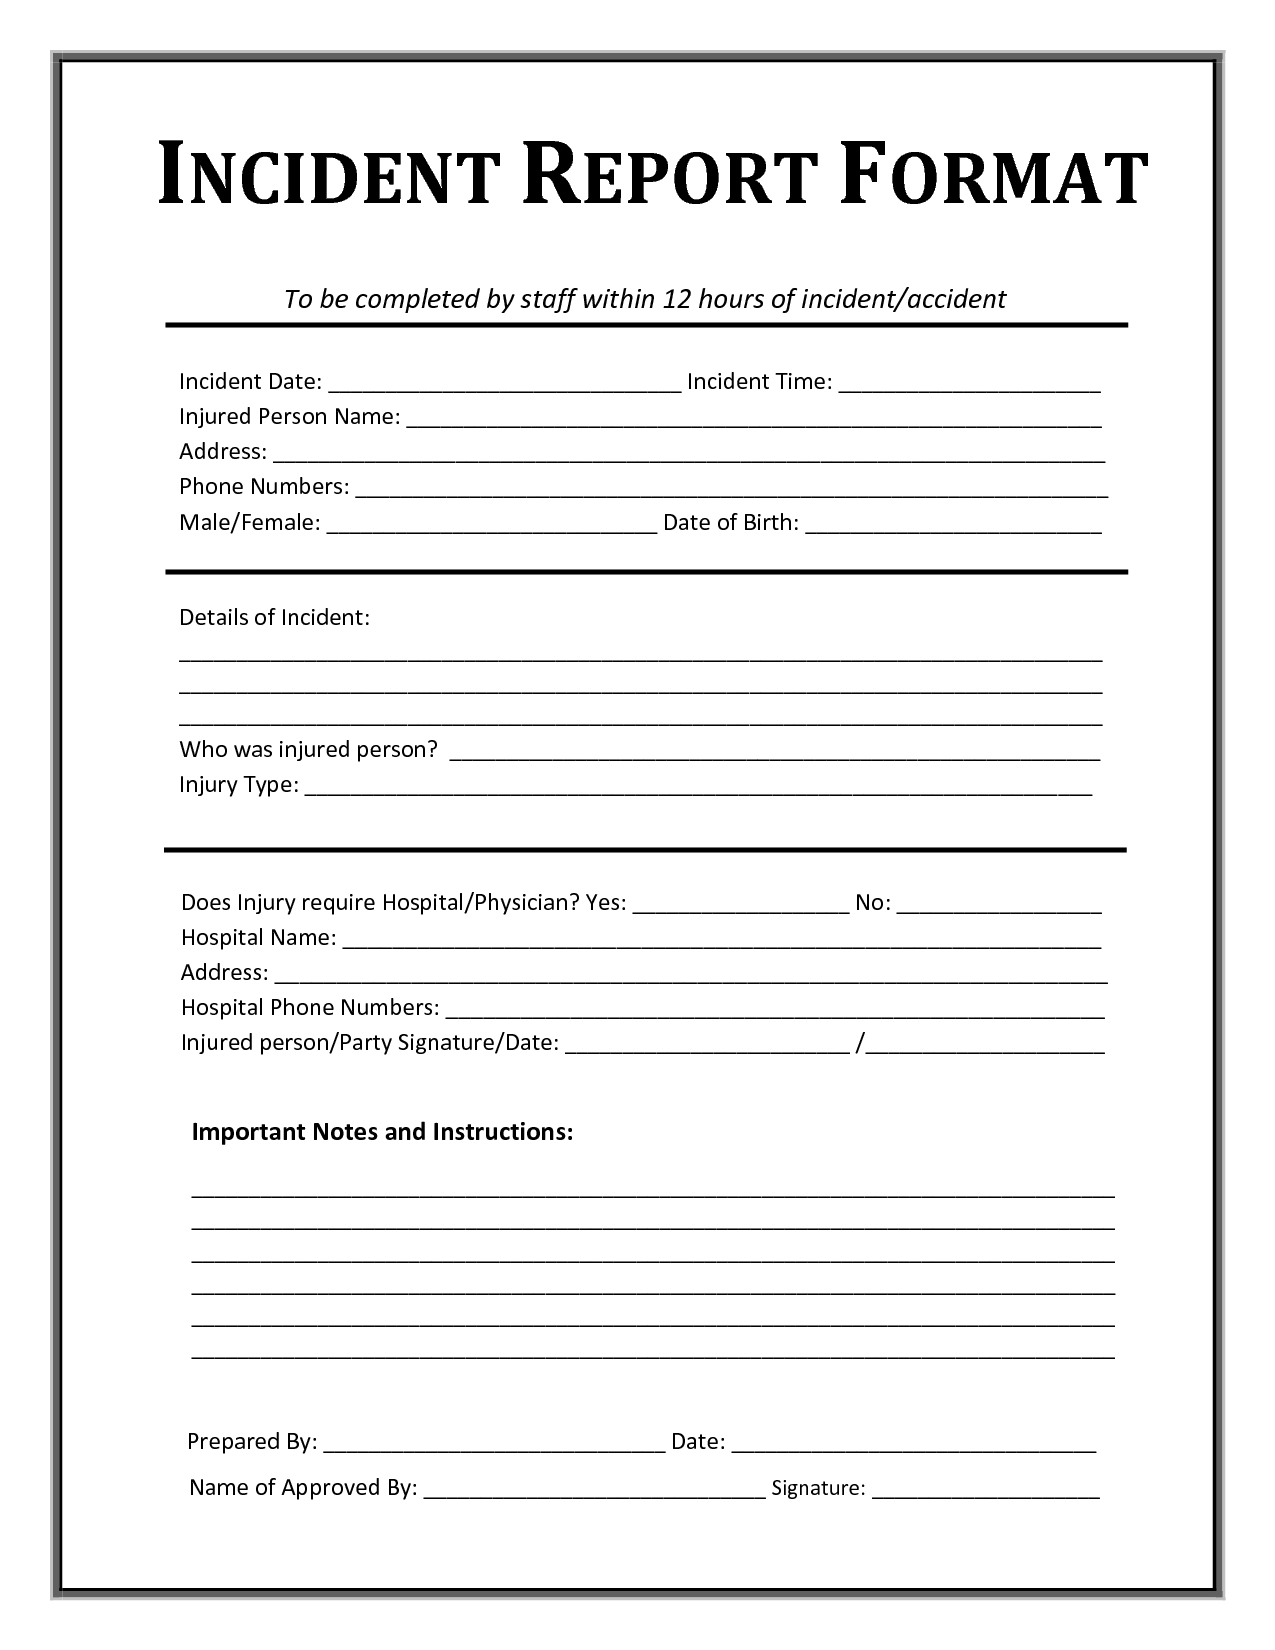 Incident report form template after school sign in for Patient report form template download